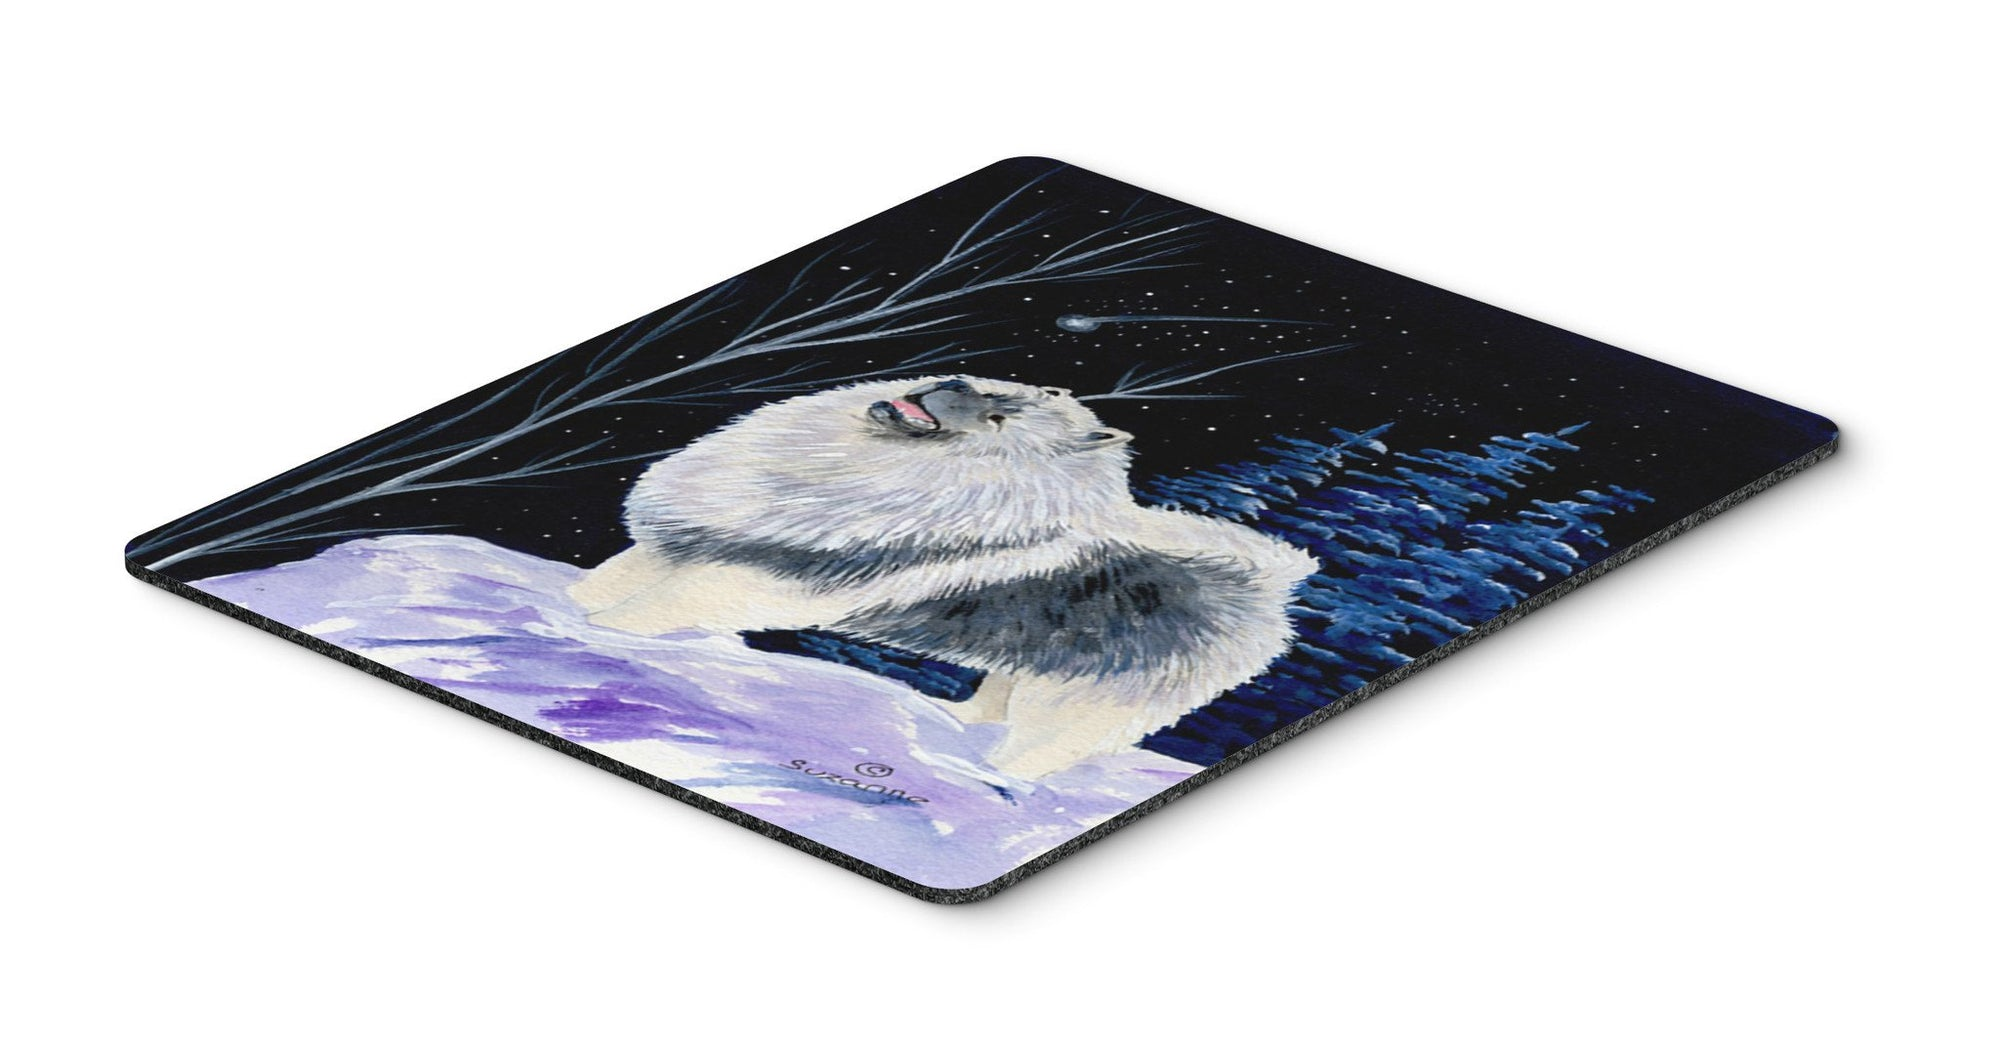 Starry Night Keeshond Mouse Pad / Hot Pad / Trivet by Caroline's Treasures